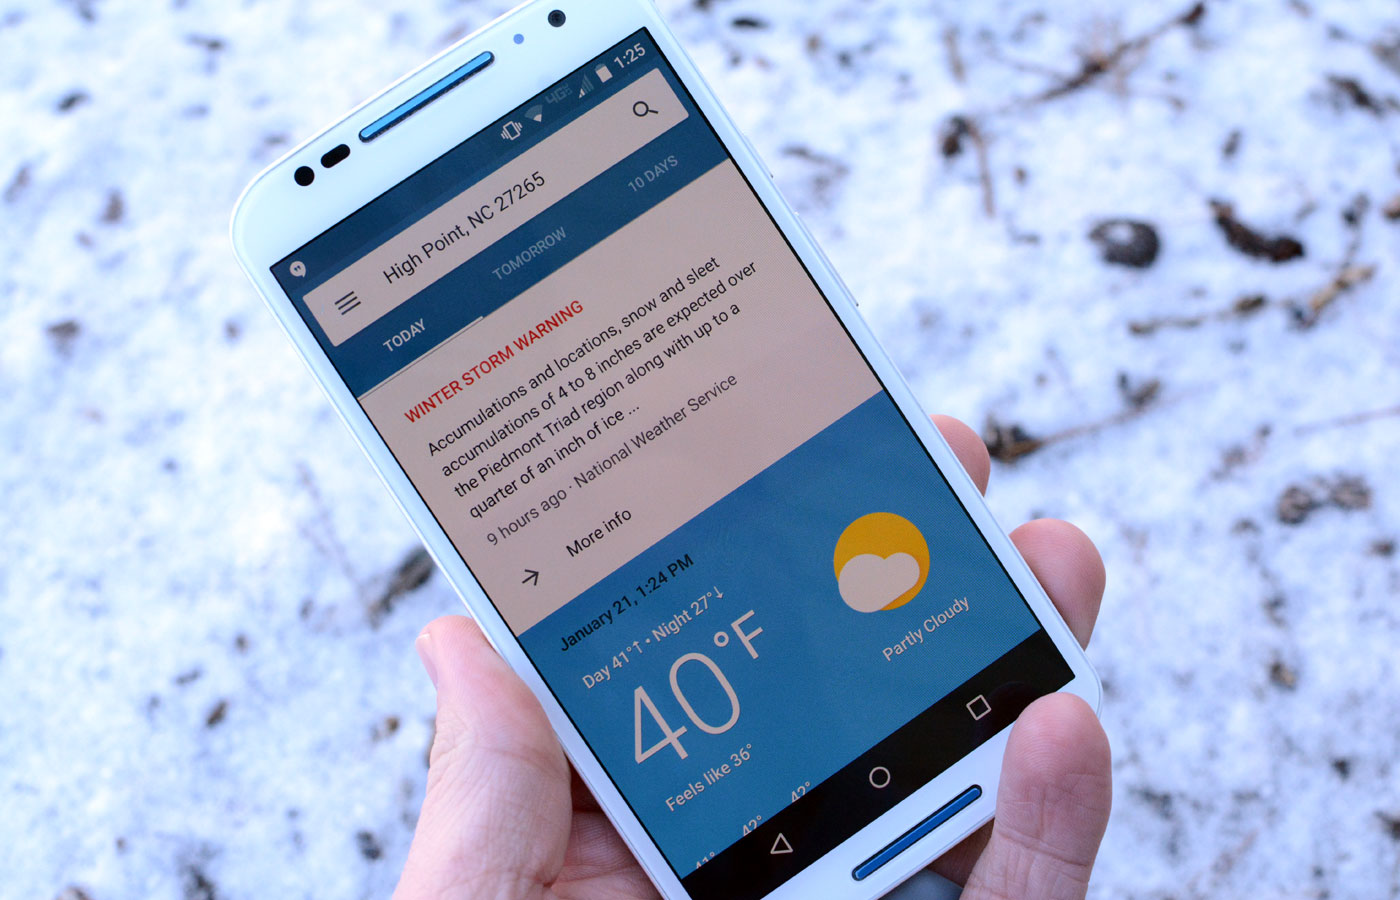 Google's mobile app gets more detailed weather info on Android